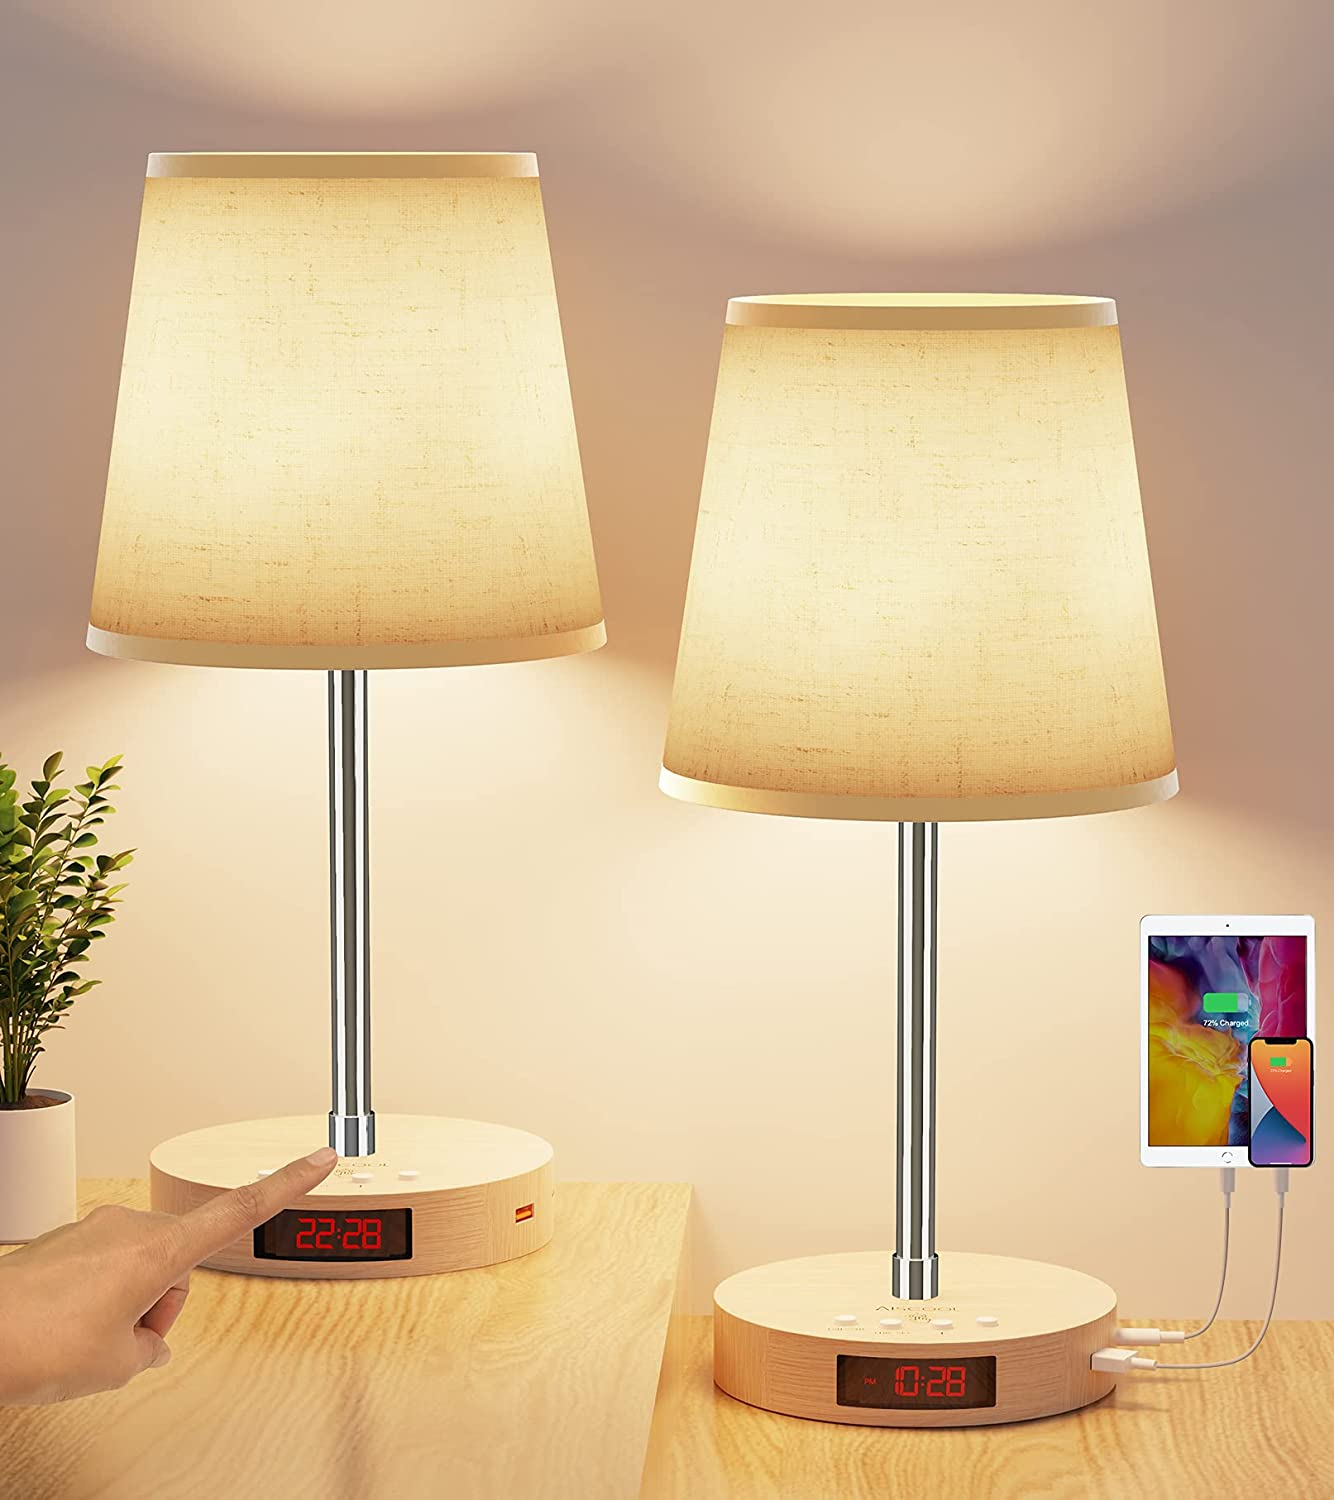 AISCOOL Spring new work one after another Bedside Table Lamp with USB San Jose Mall Stepless Type Dimma C Ports